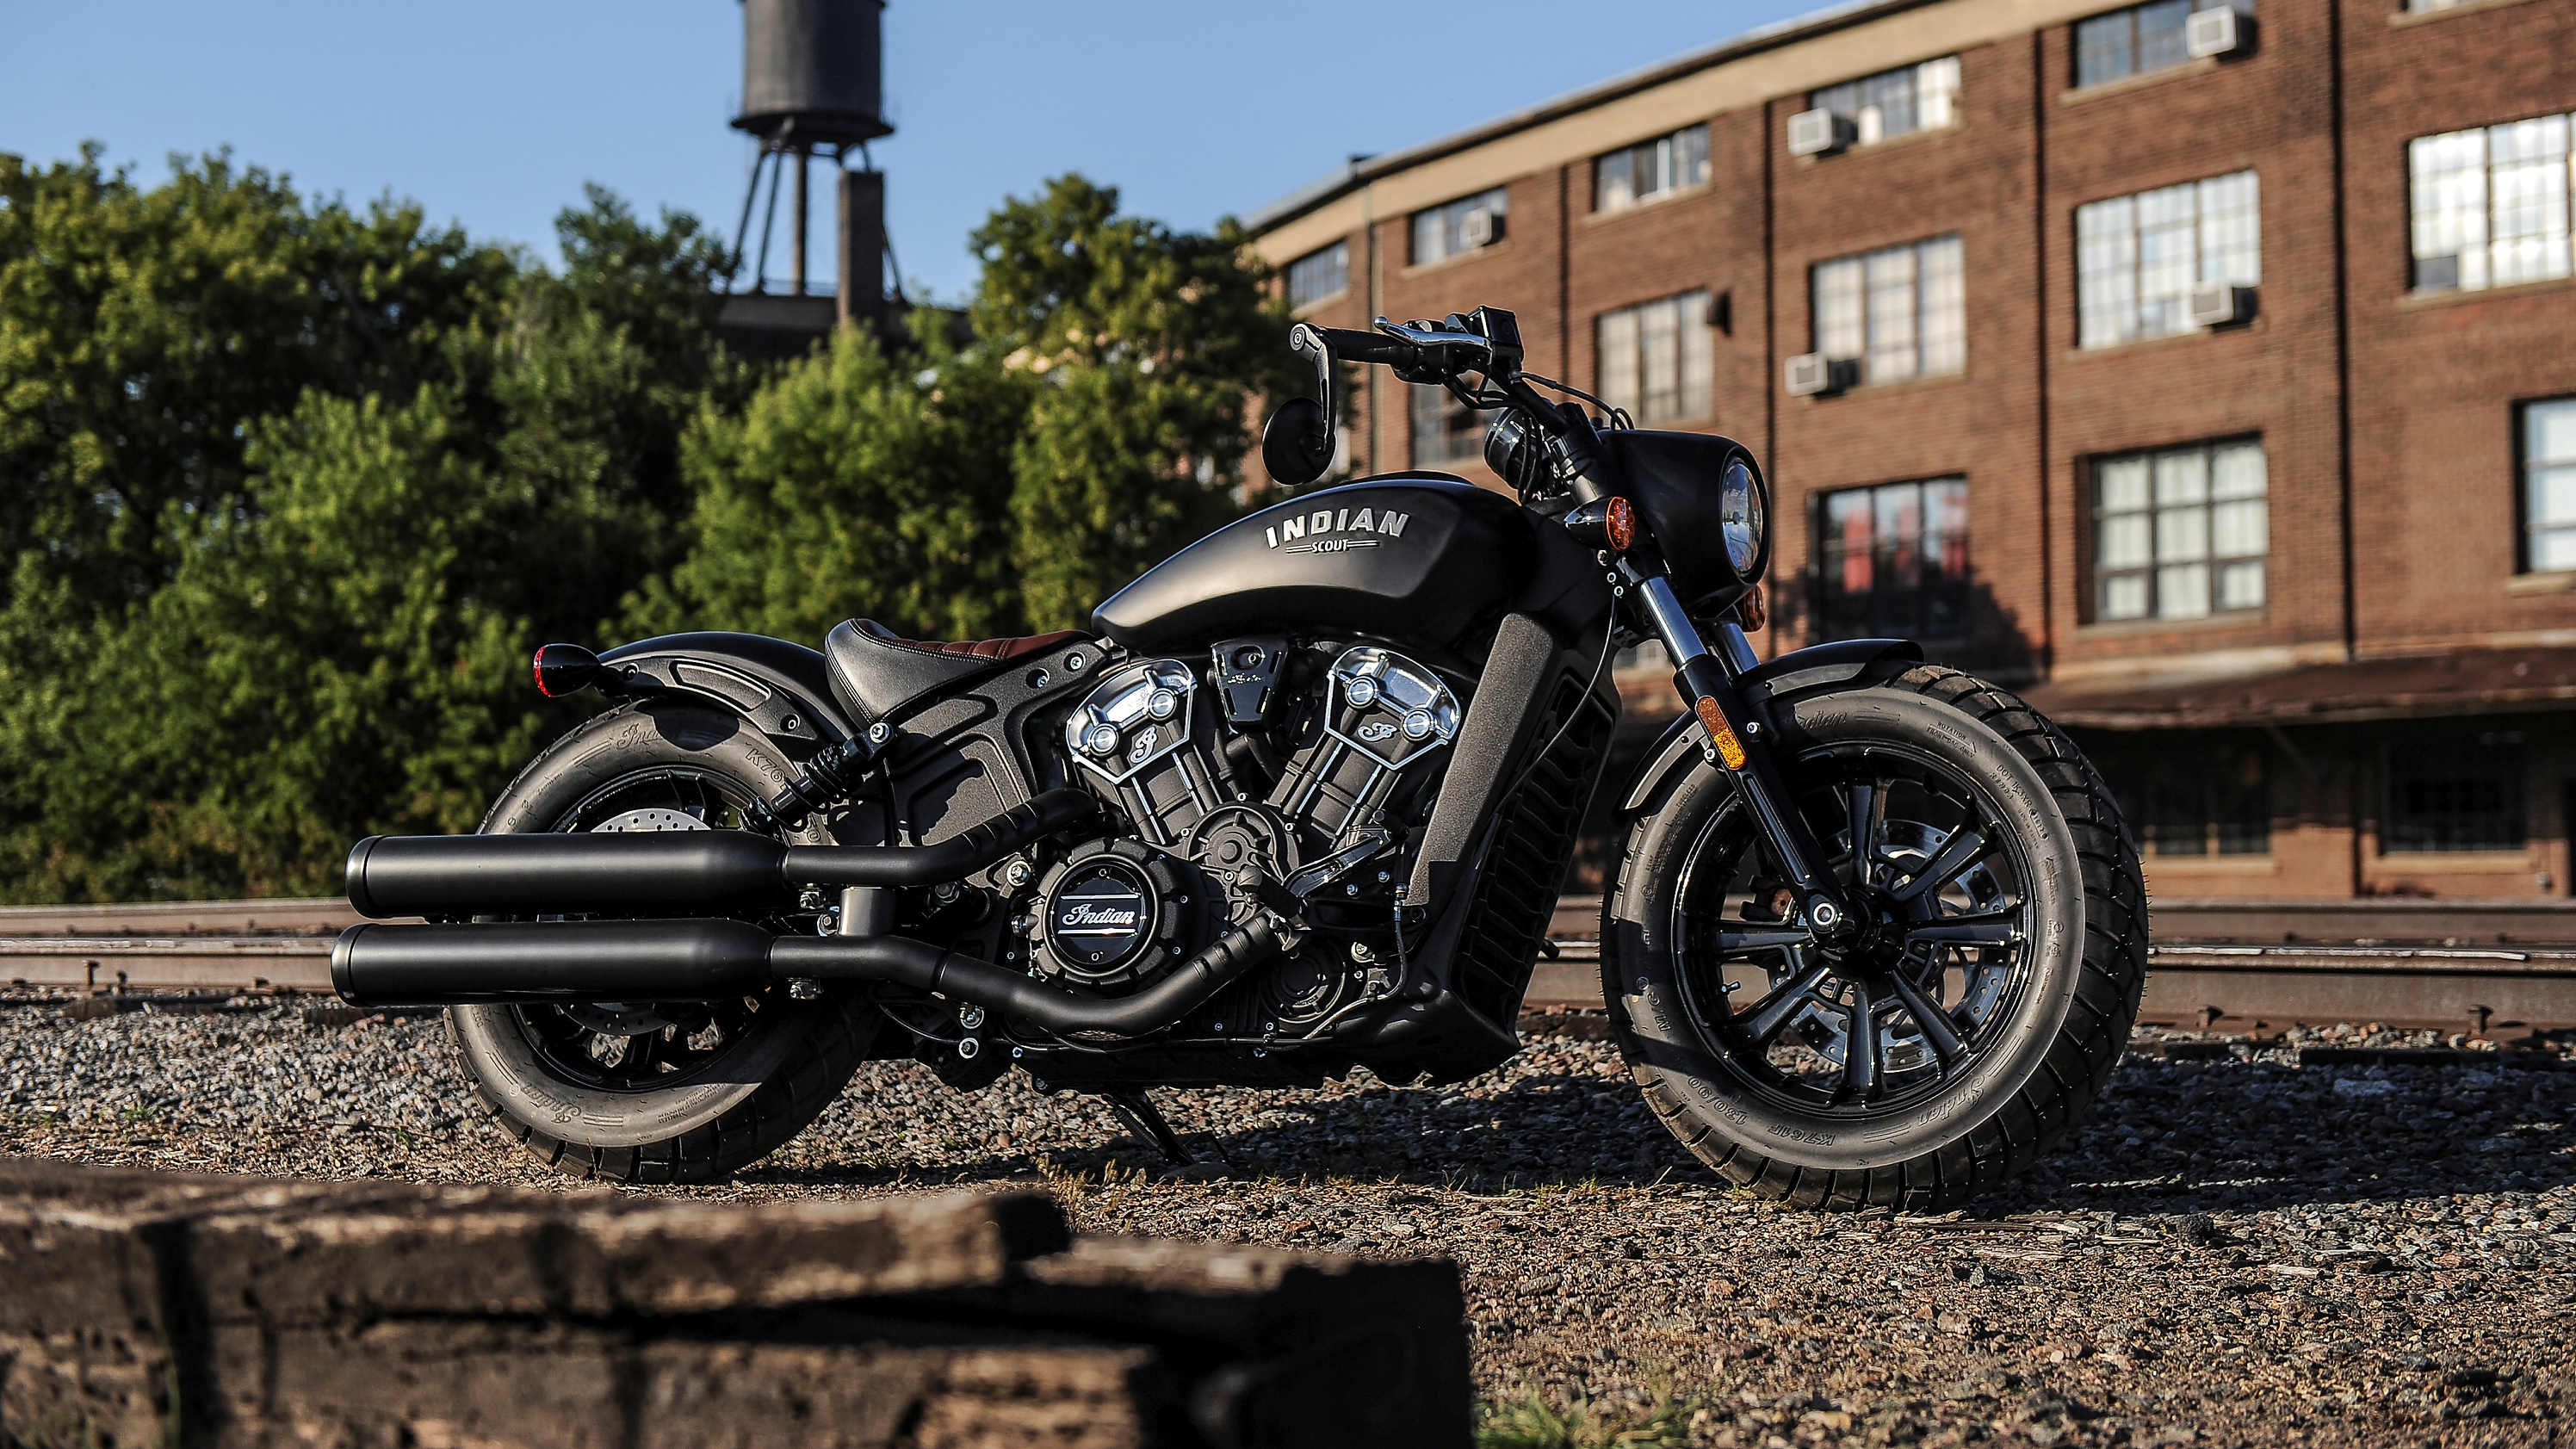 2018 - 2019 Indian Motorcycle Scout Bobber | Top Speed